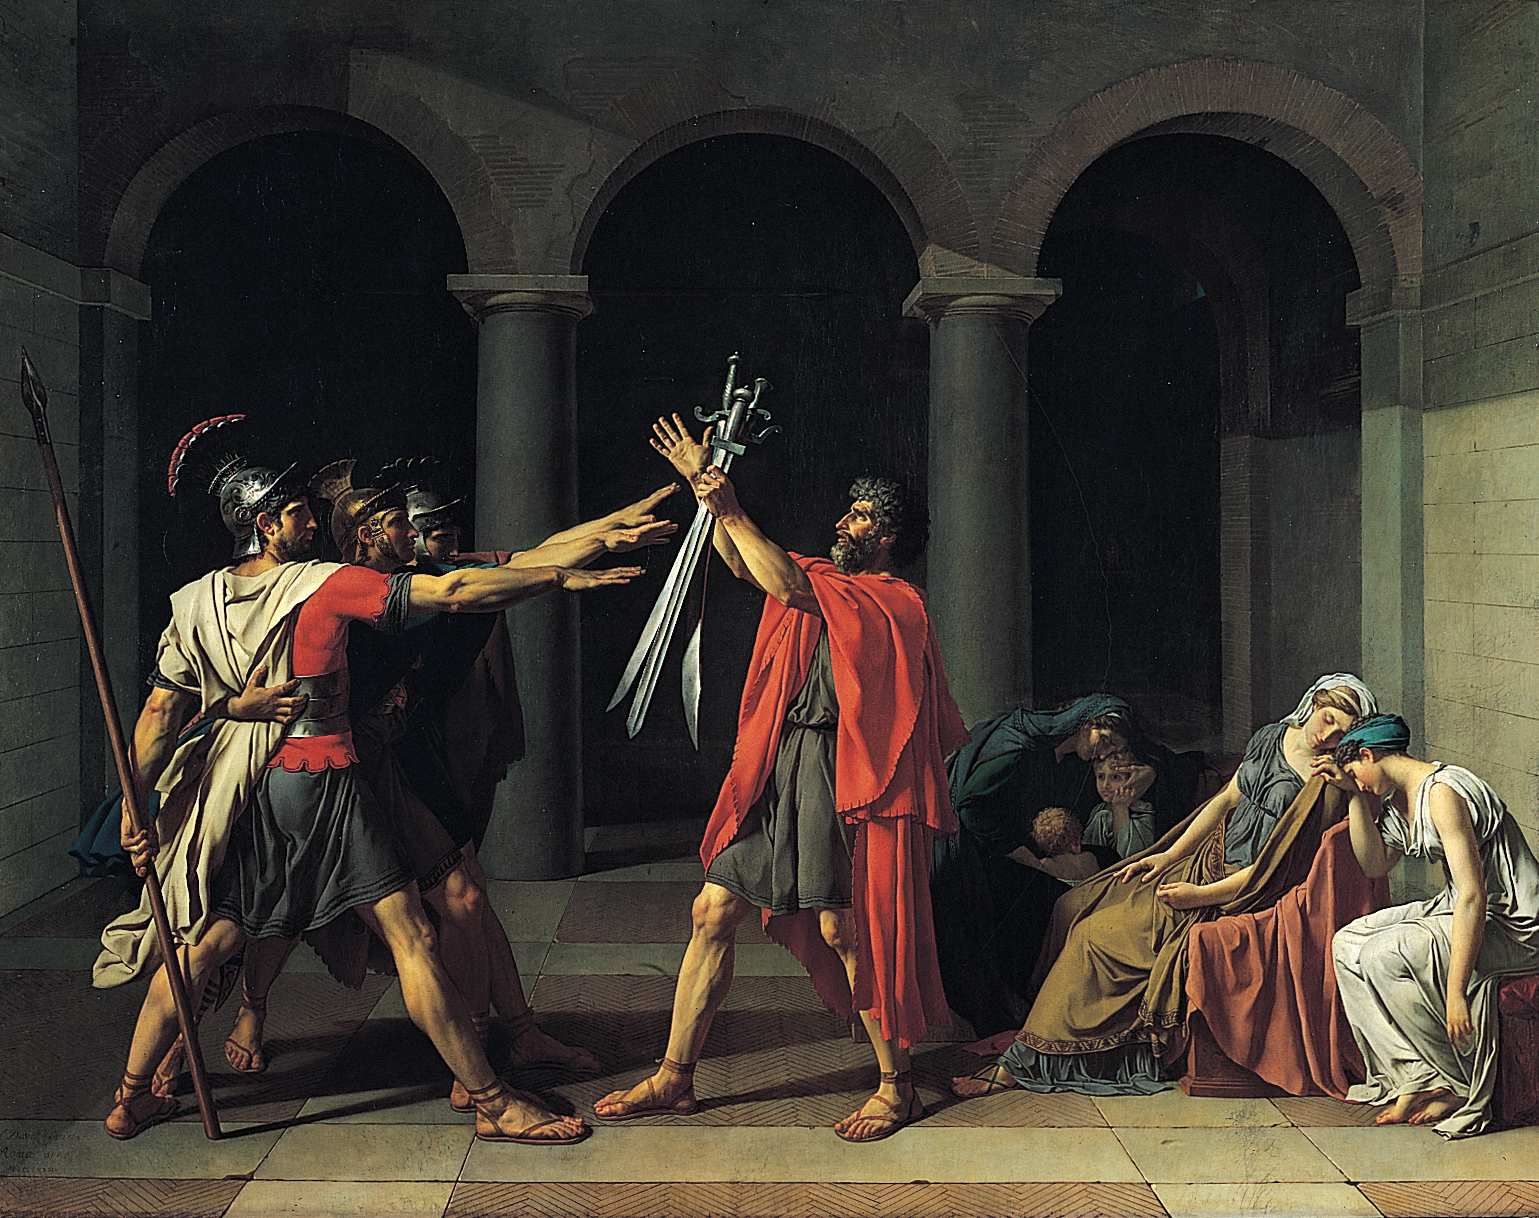 Oath of the Horatii - Jacque-Louis David (1784) (Wikimedia)